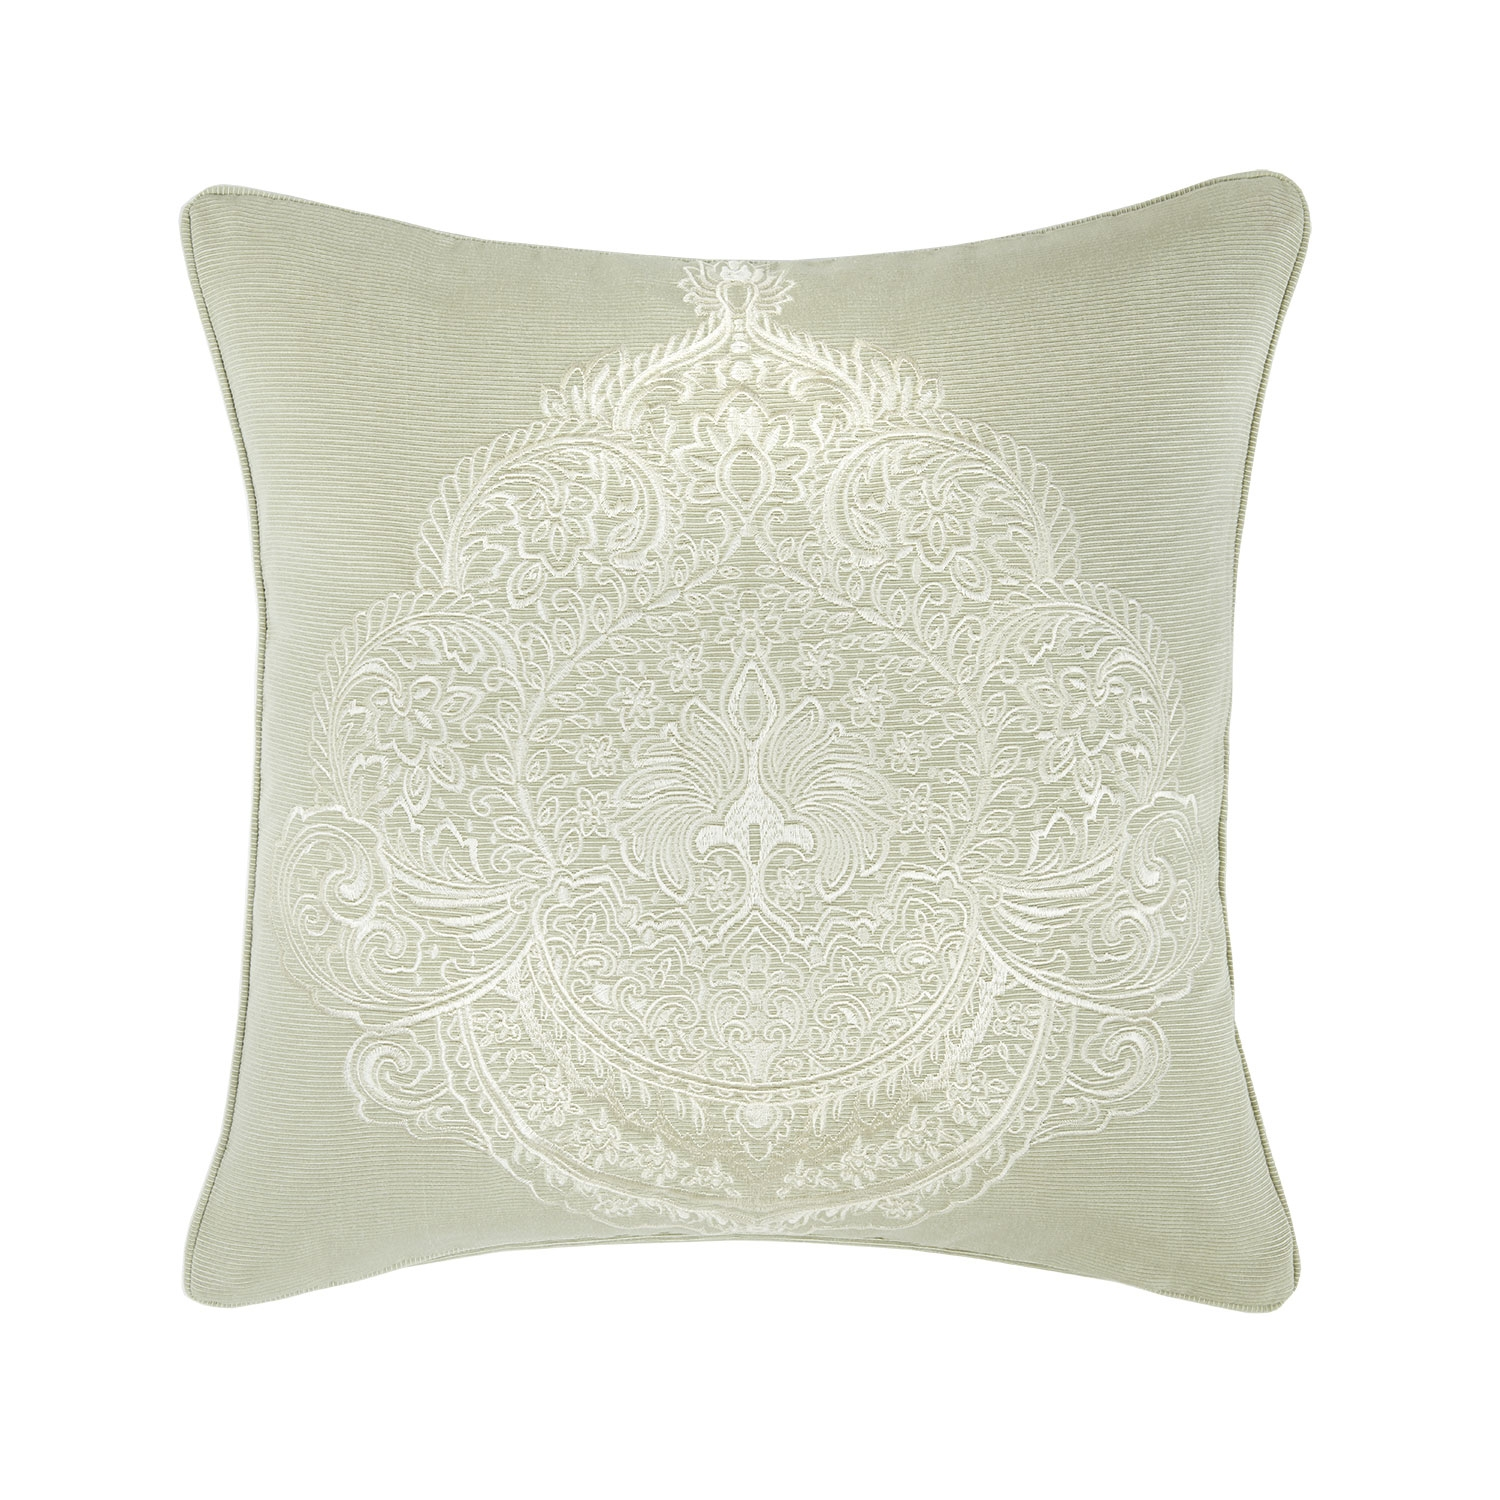 Capri Soft Green Luxury Jacquard Embroidered Filled Square Cushion